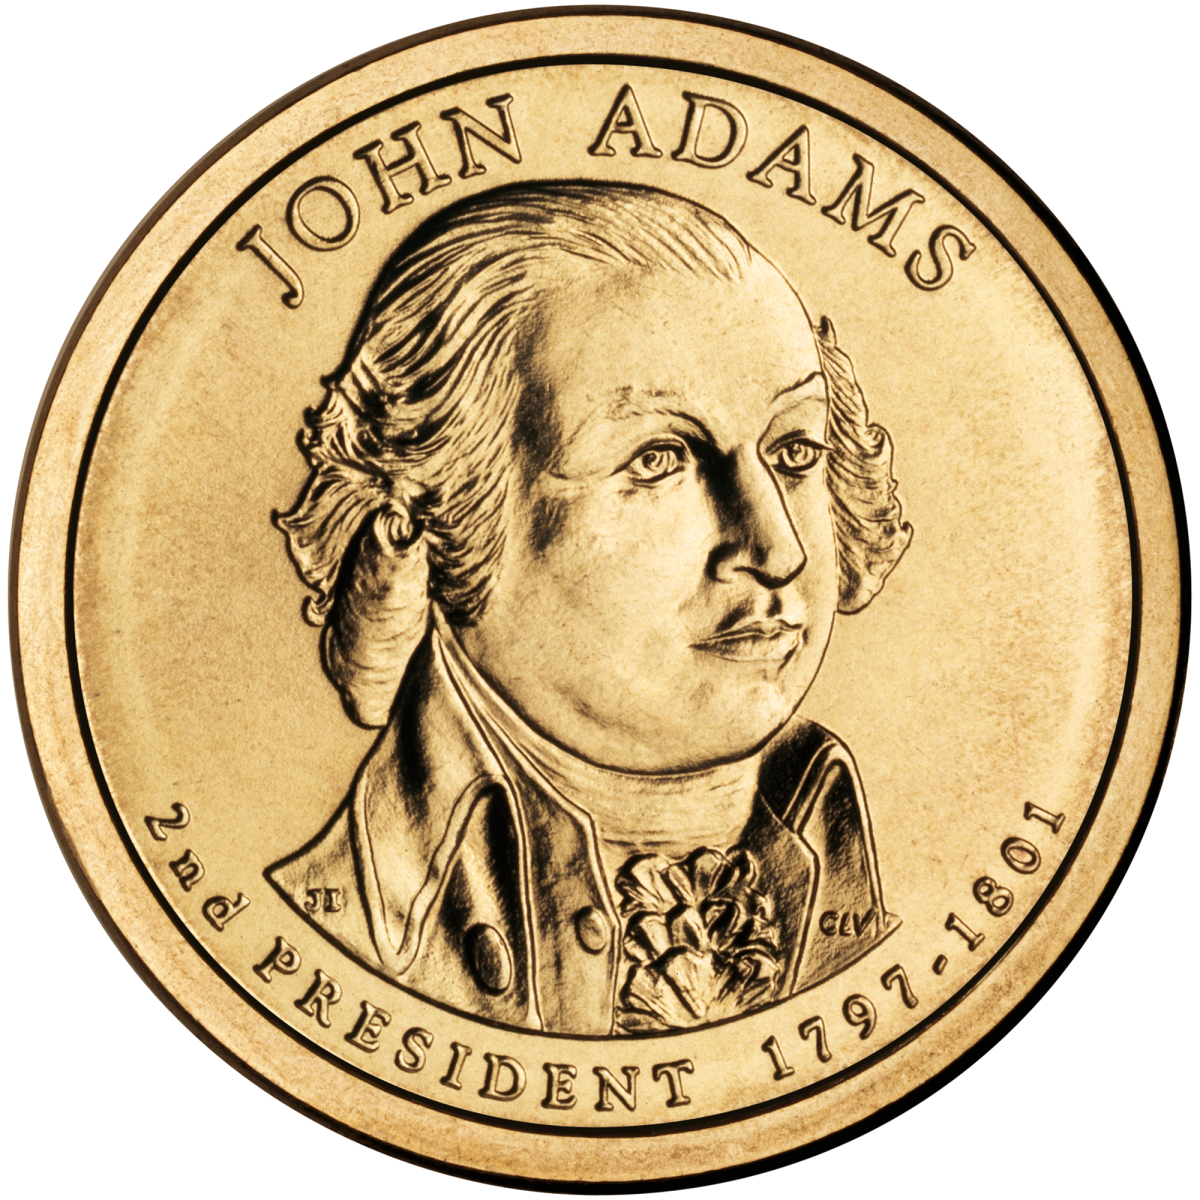 John Adams was America's second president. Unlike his predecessor, Adams was impetuous and strongly opinionated. Adams was vital as an early advocate of independence and in shaping the kind of republic America would embrace.